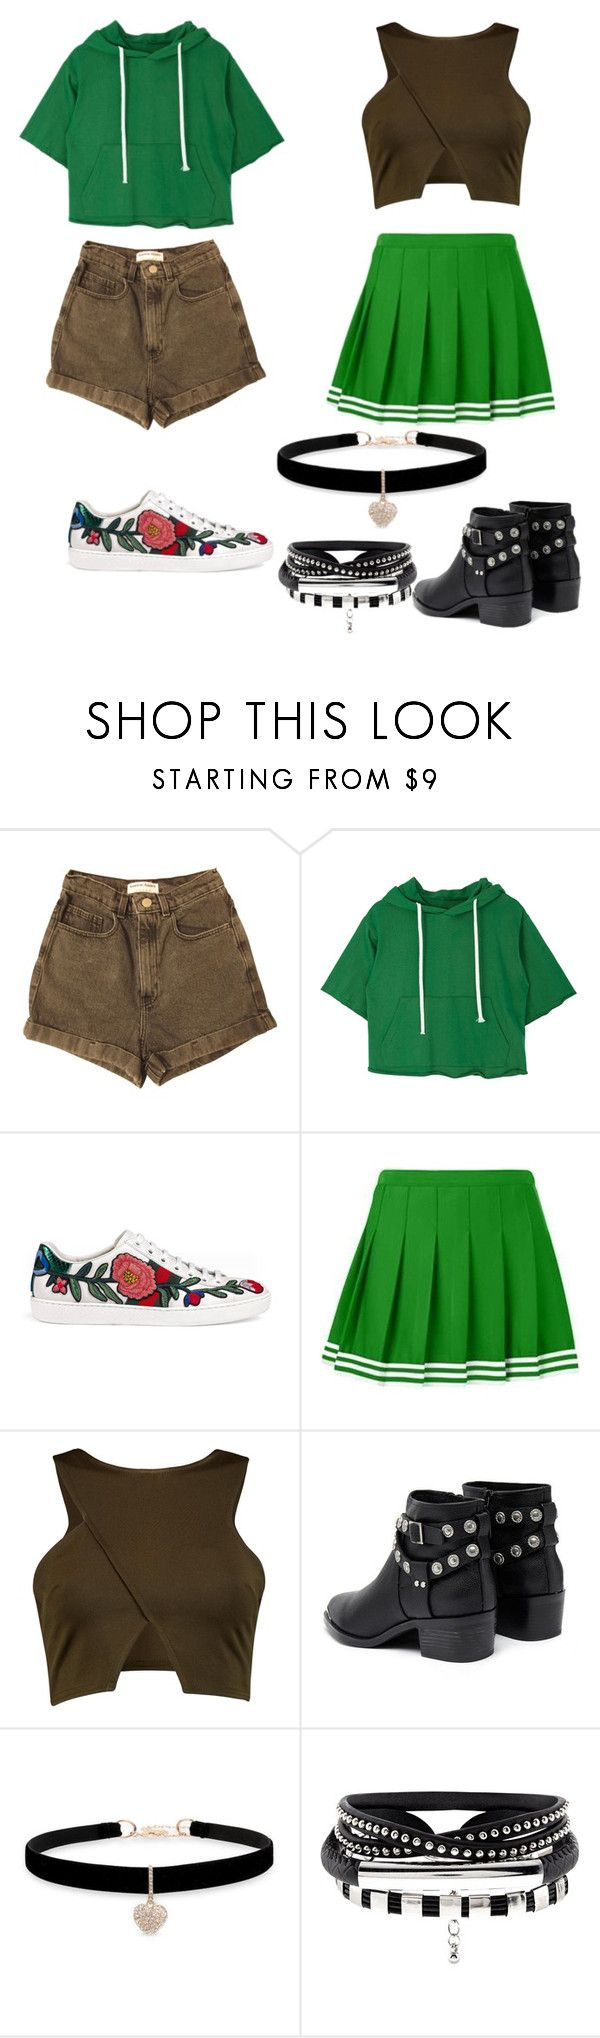 """Merida"" by malucarreiromc ❤ liked on Polyvore featuring American Apparel, Gucci, Senso and Betsey Johnson"